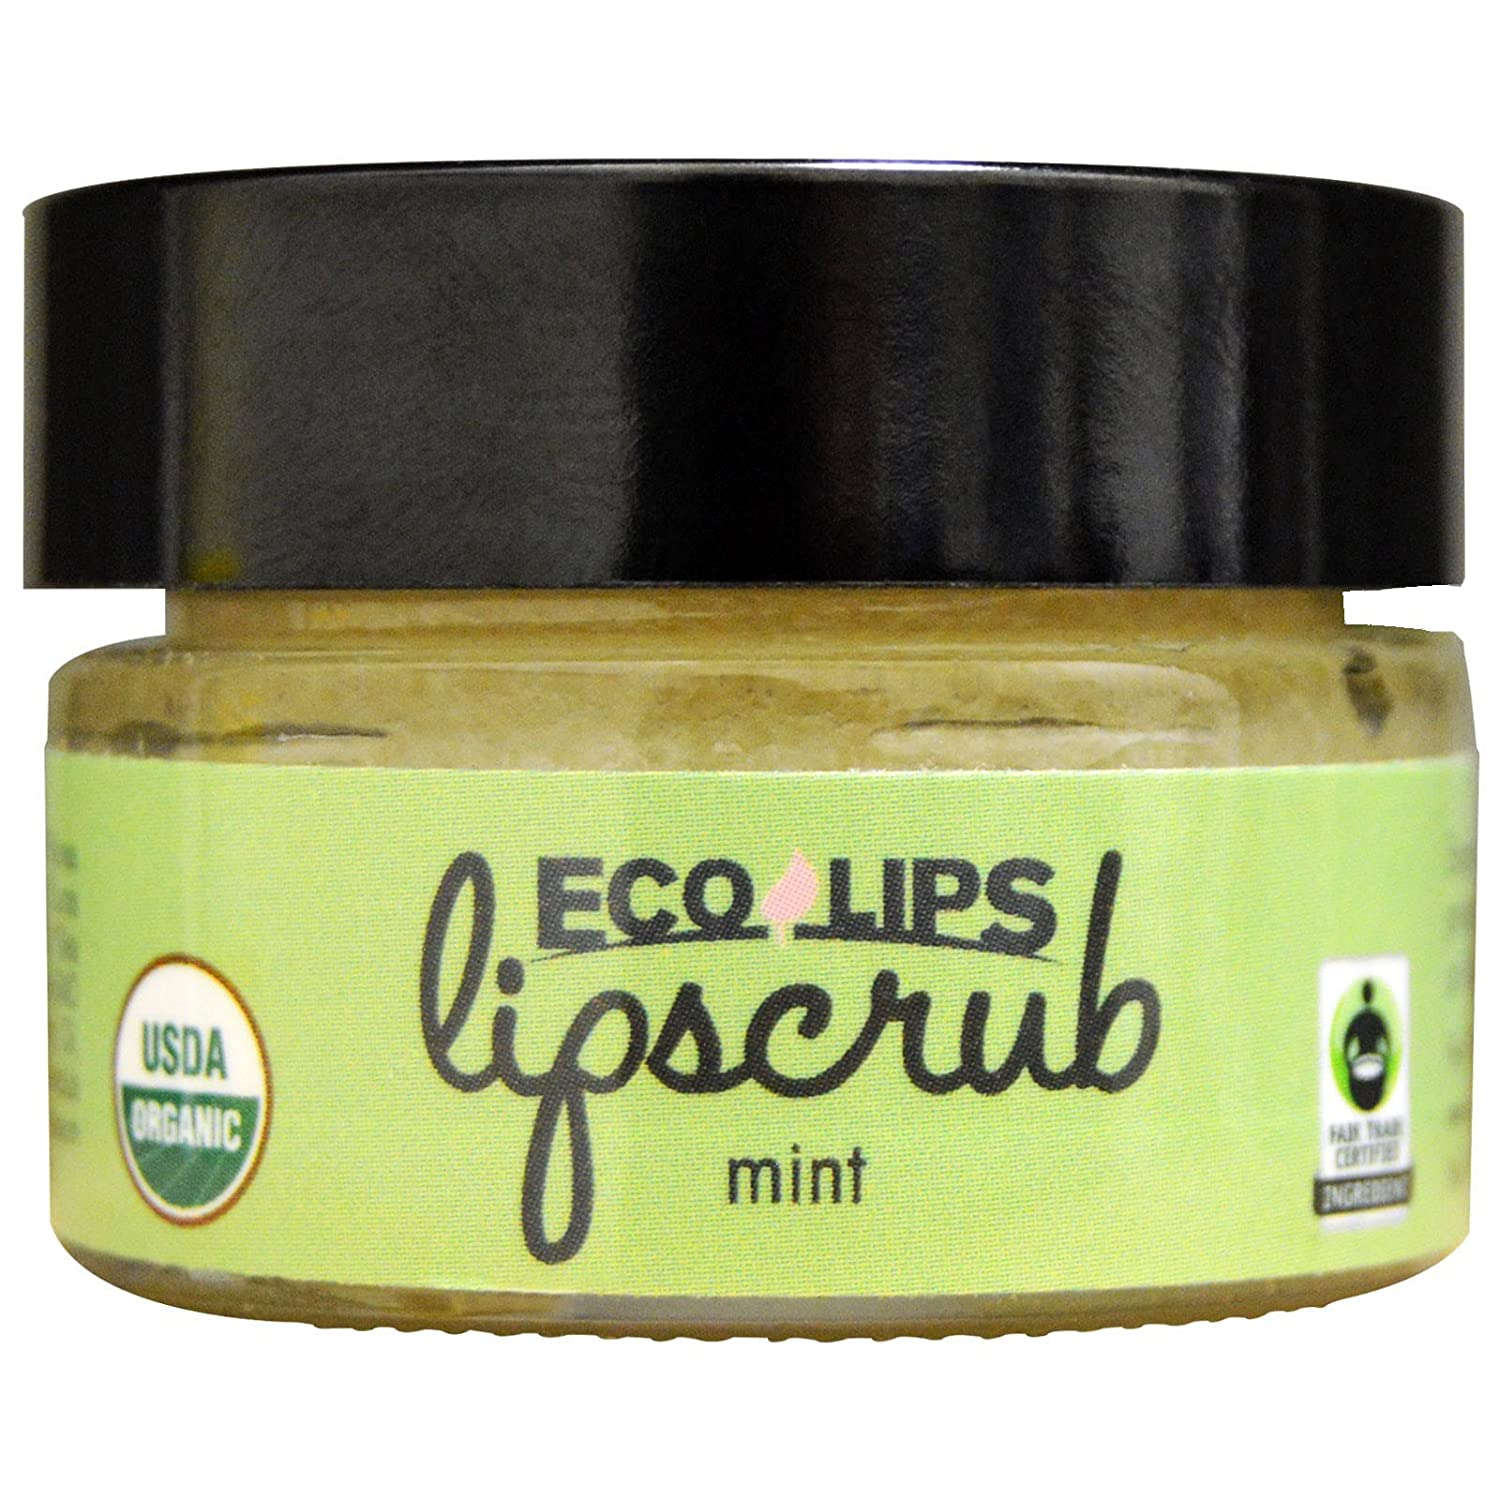 Lip Scrub Mint ECO LIPS 0.50 Balm by Eco Lips